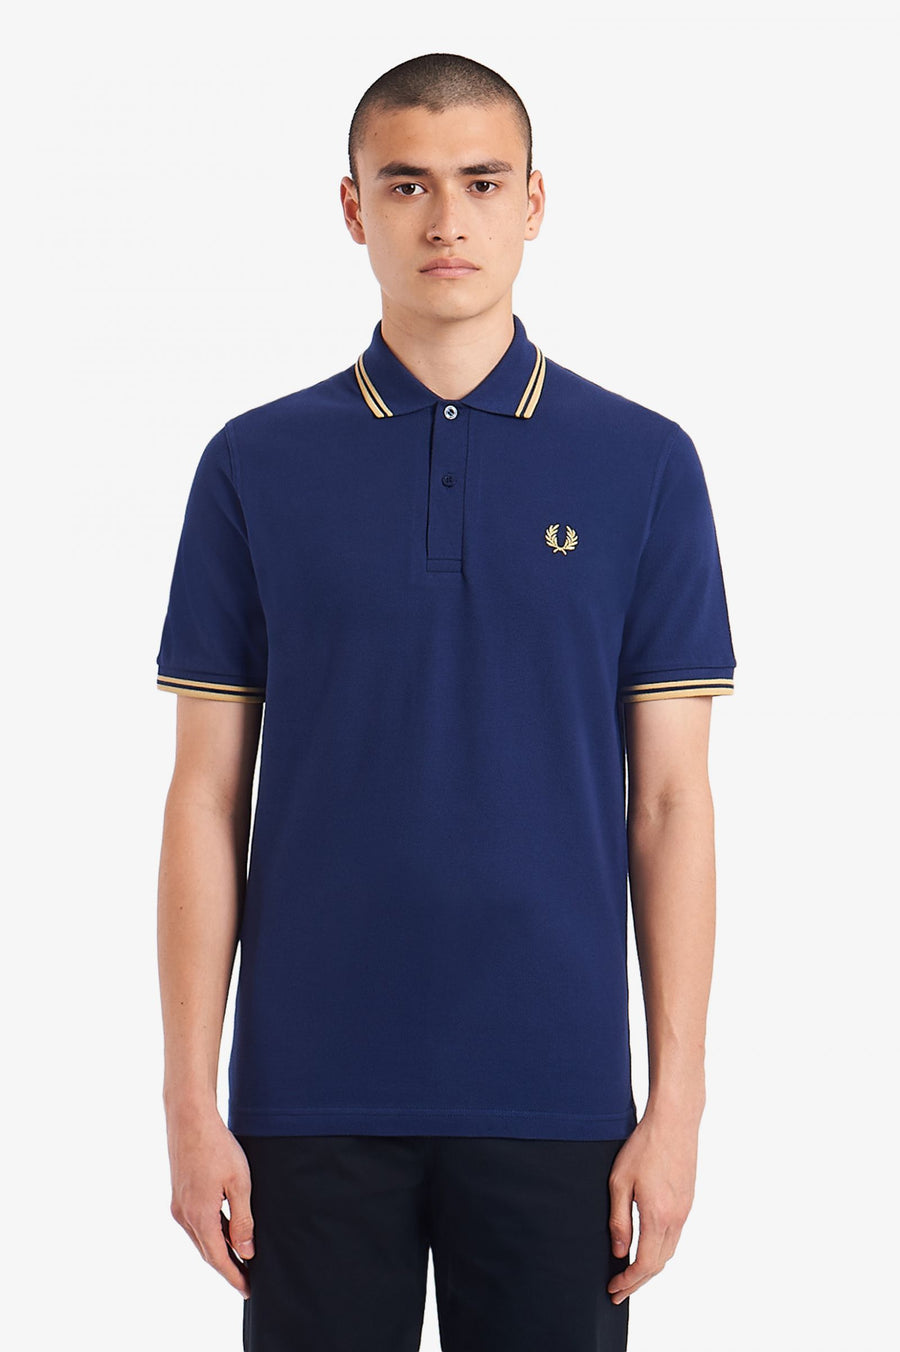 Fred Perry Twin Tipped M12 Polo Shirt - French Navy/Champagne